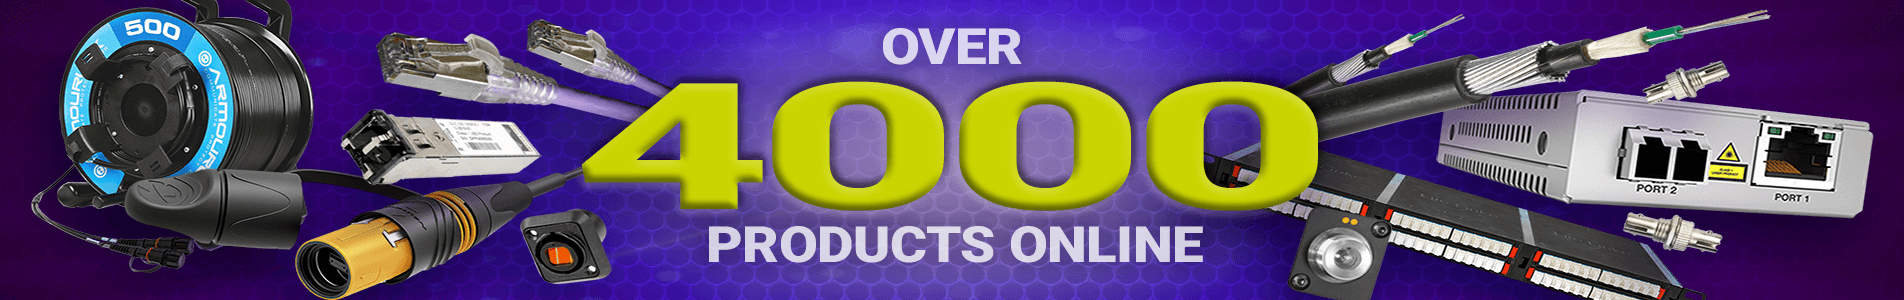 OVER 4000 PRODUCTS TO BUY ONLINE